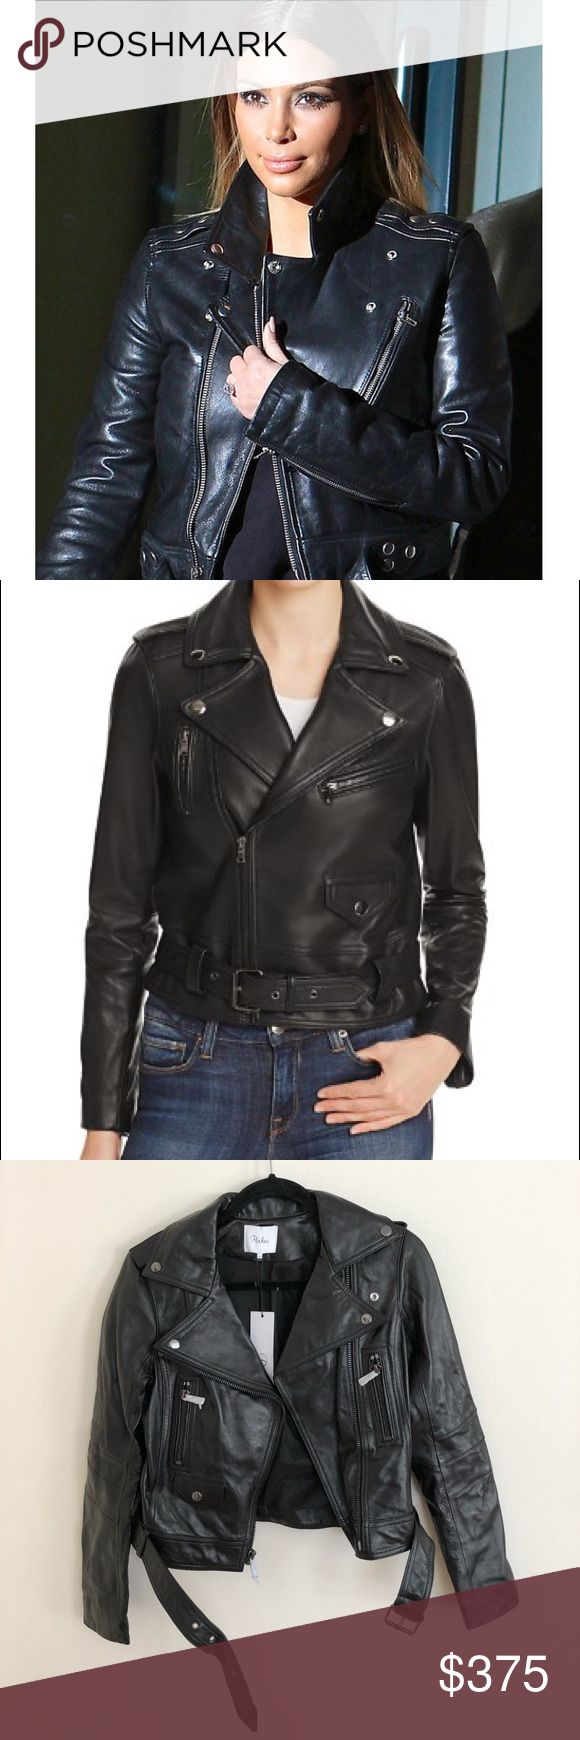 """Parker Leather Jacket 100% Leather. Long sleeves. Jacket. Visible front zipper. Fully lined. 22"""" from shoulder to hemline. Imported. Parker Jackets & Coats"""